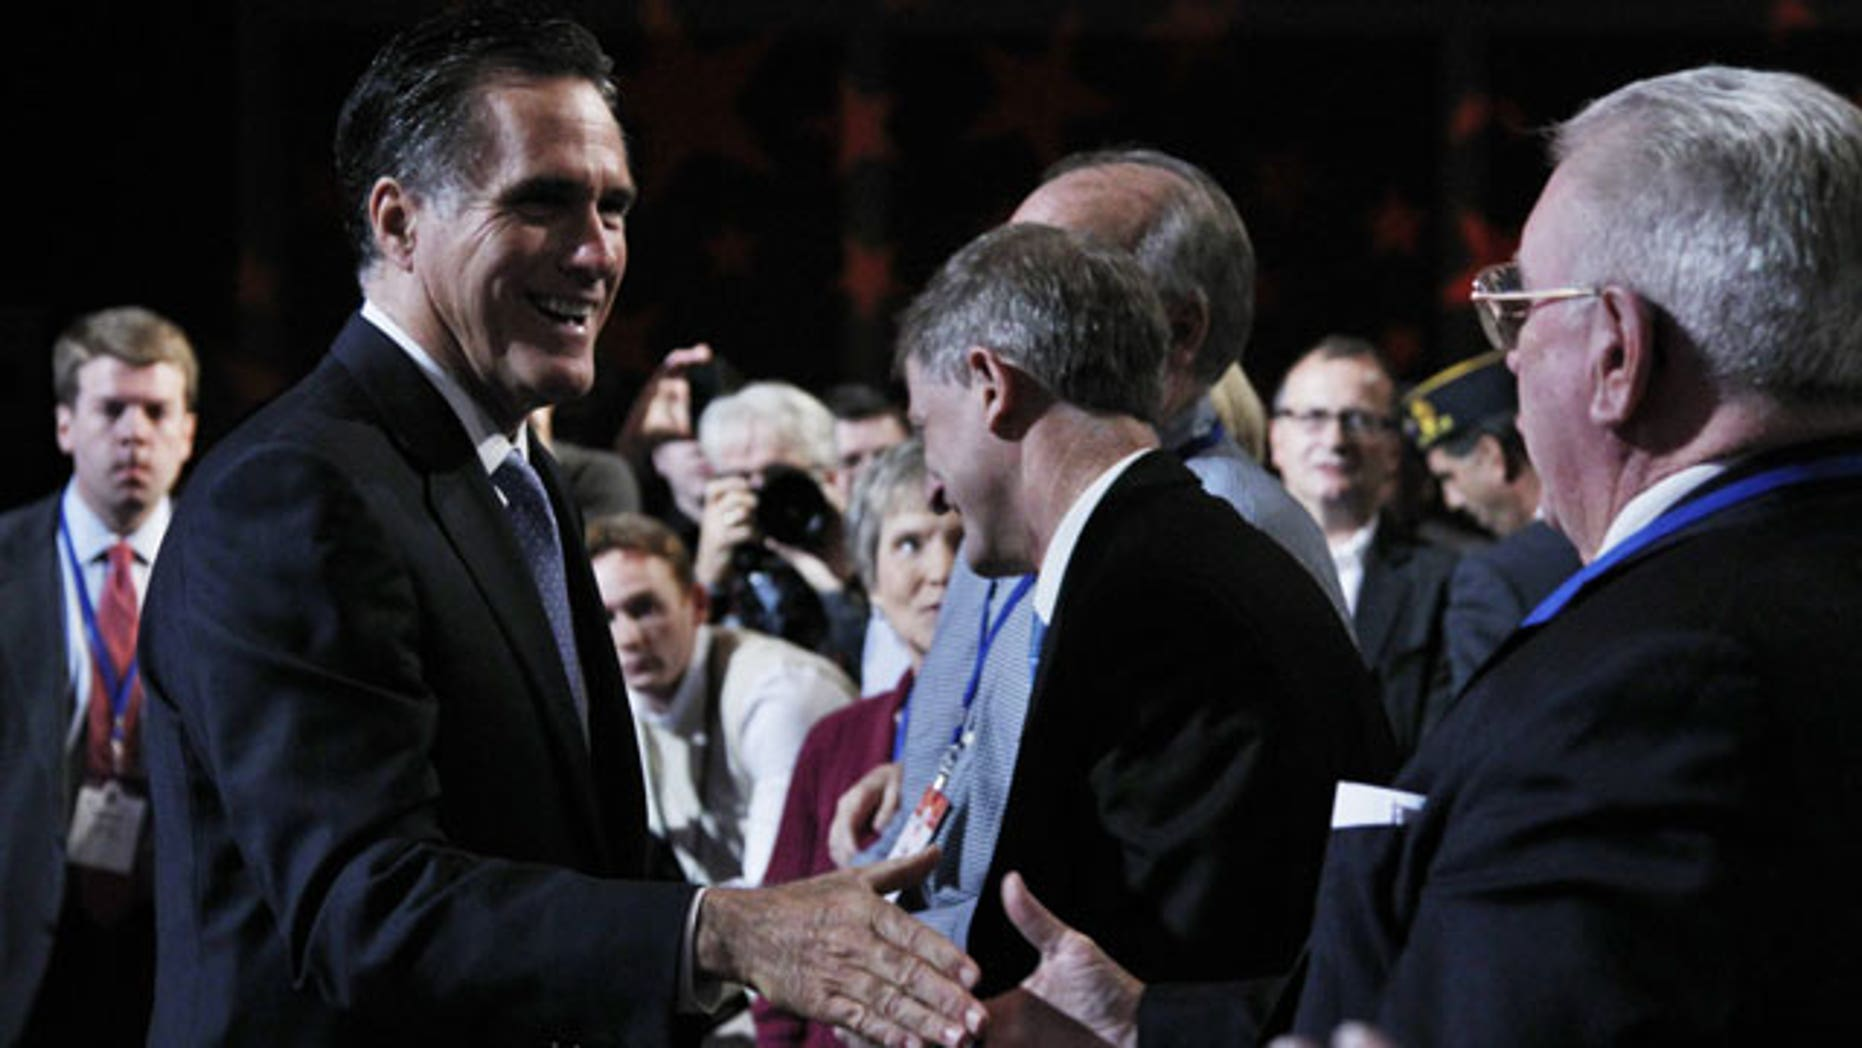 October 8: Republican presidential candidate former Governor Mitt Romney, left, greets the crowd after delivering his remarks at the Values Voter Summit in Washington.